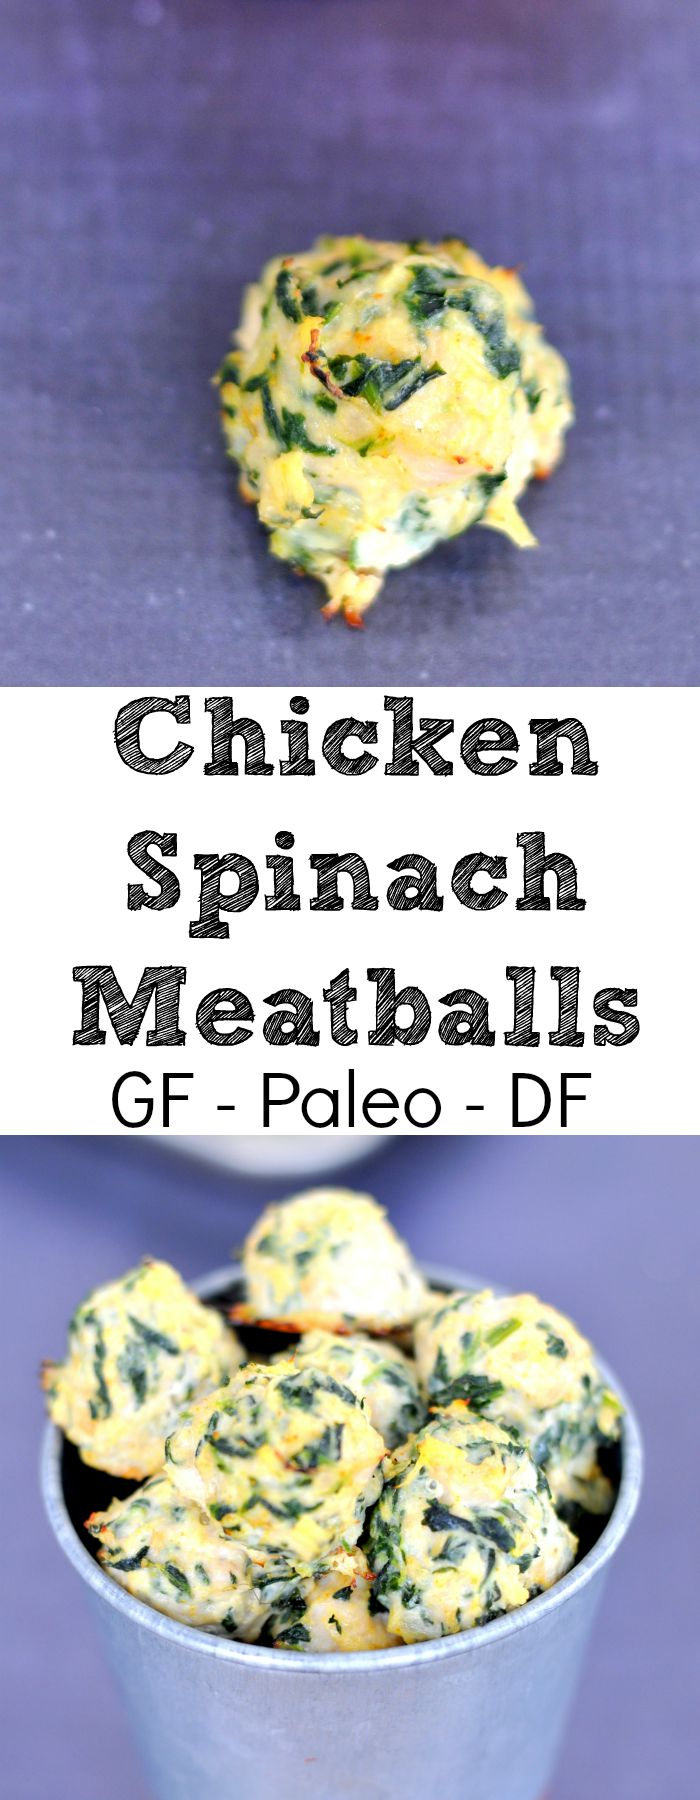 Paleo Chicken Spinach Meatballs